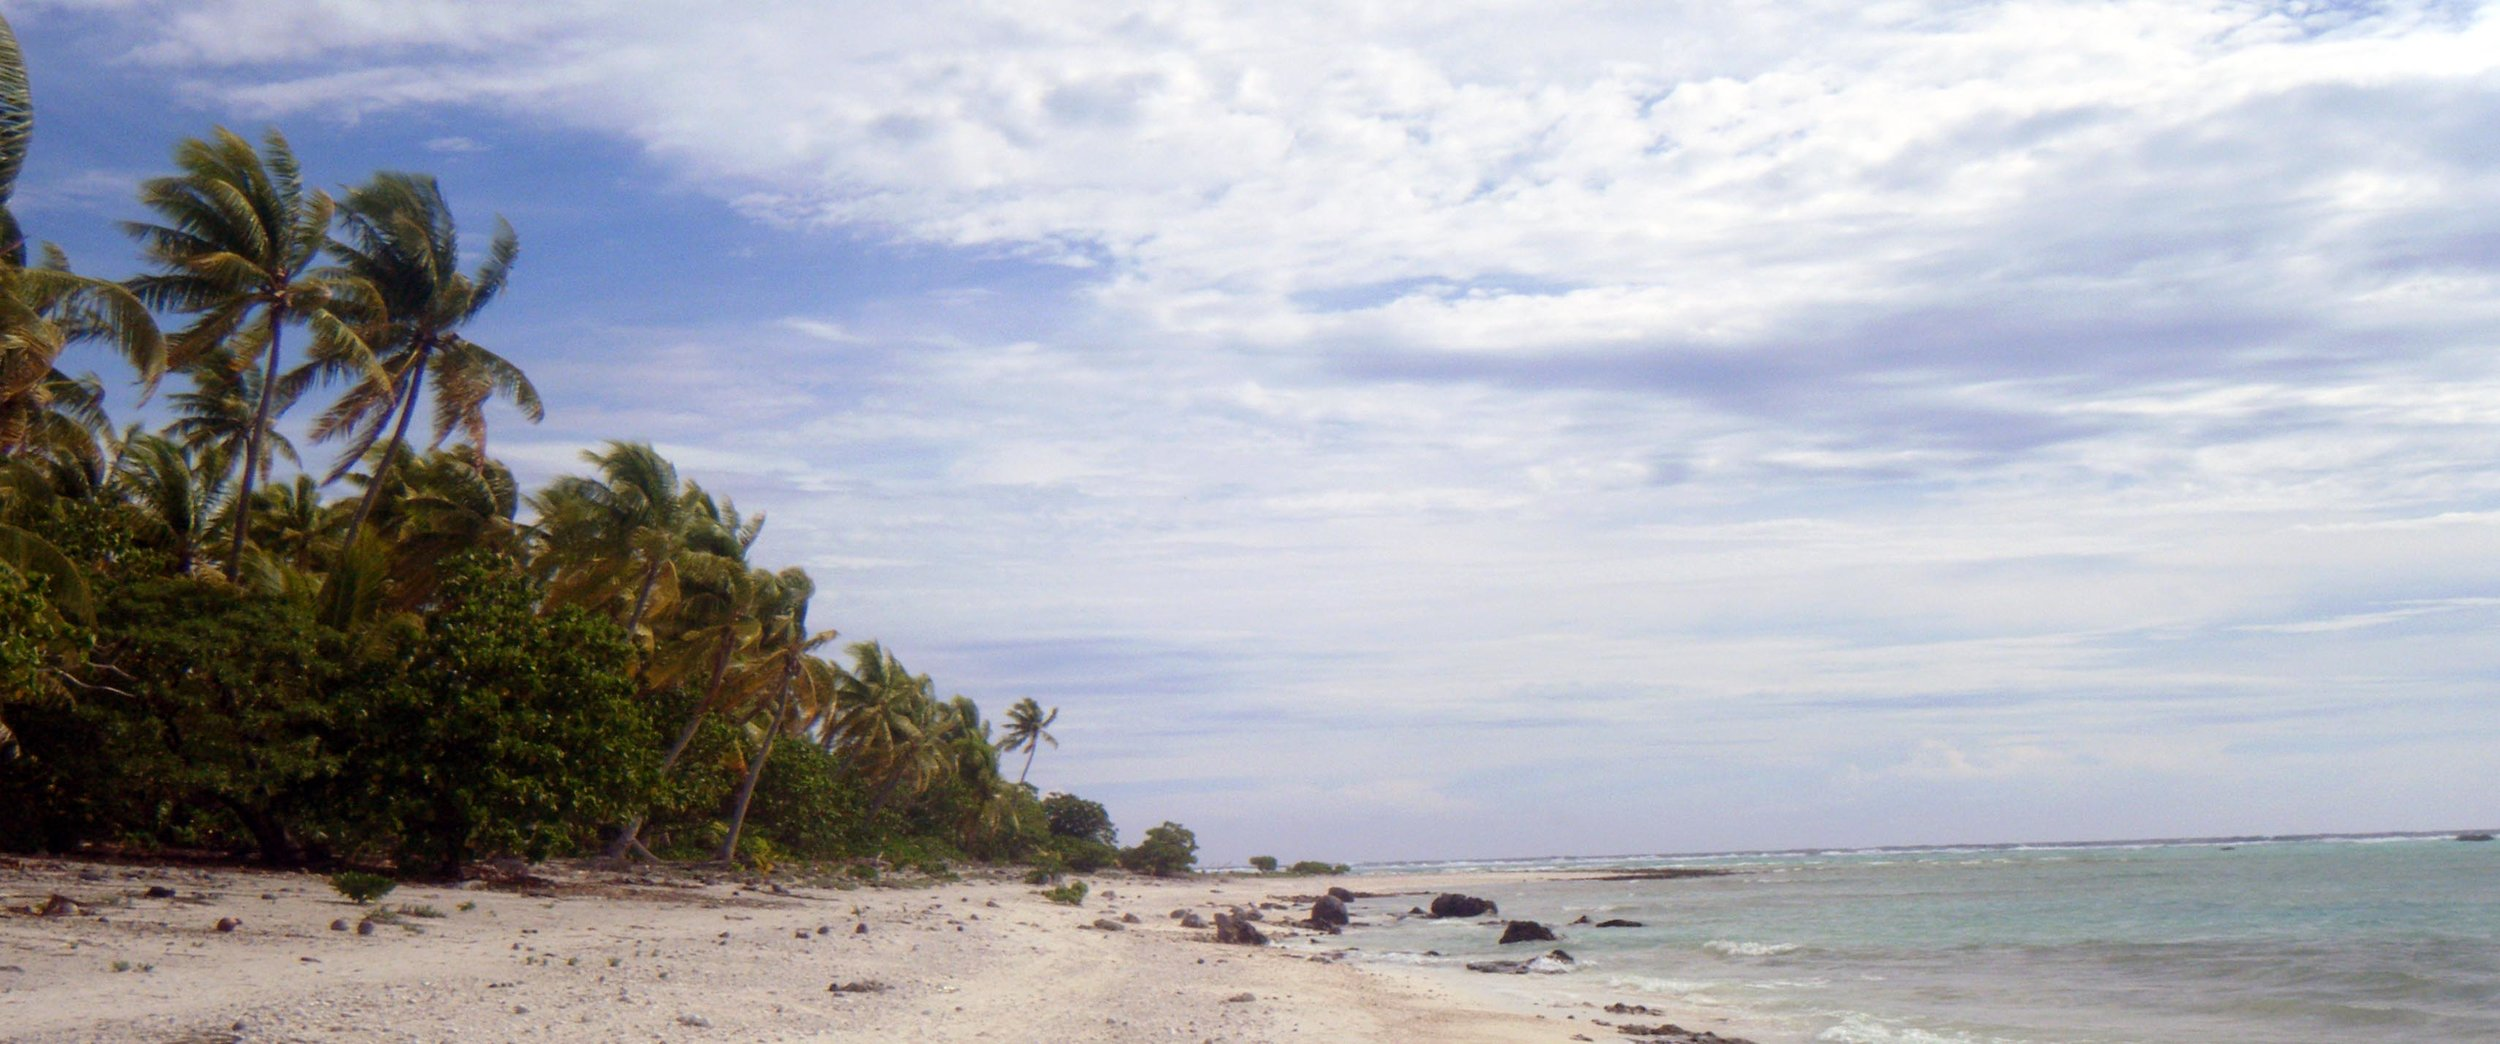 desolte beaches of Palmerston.jpg